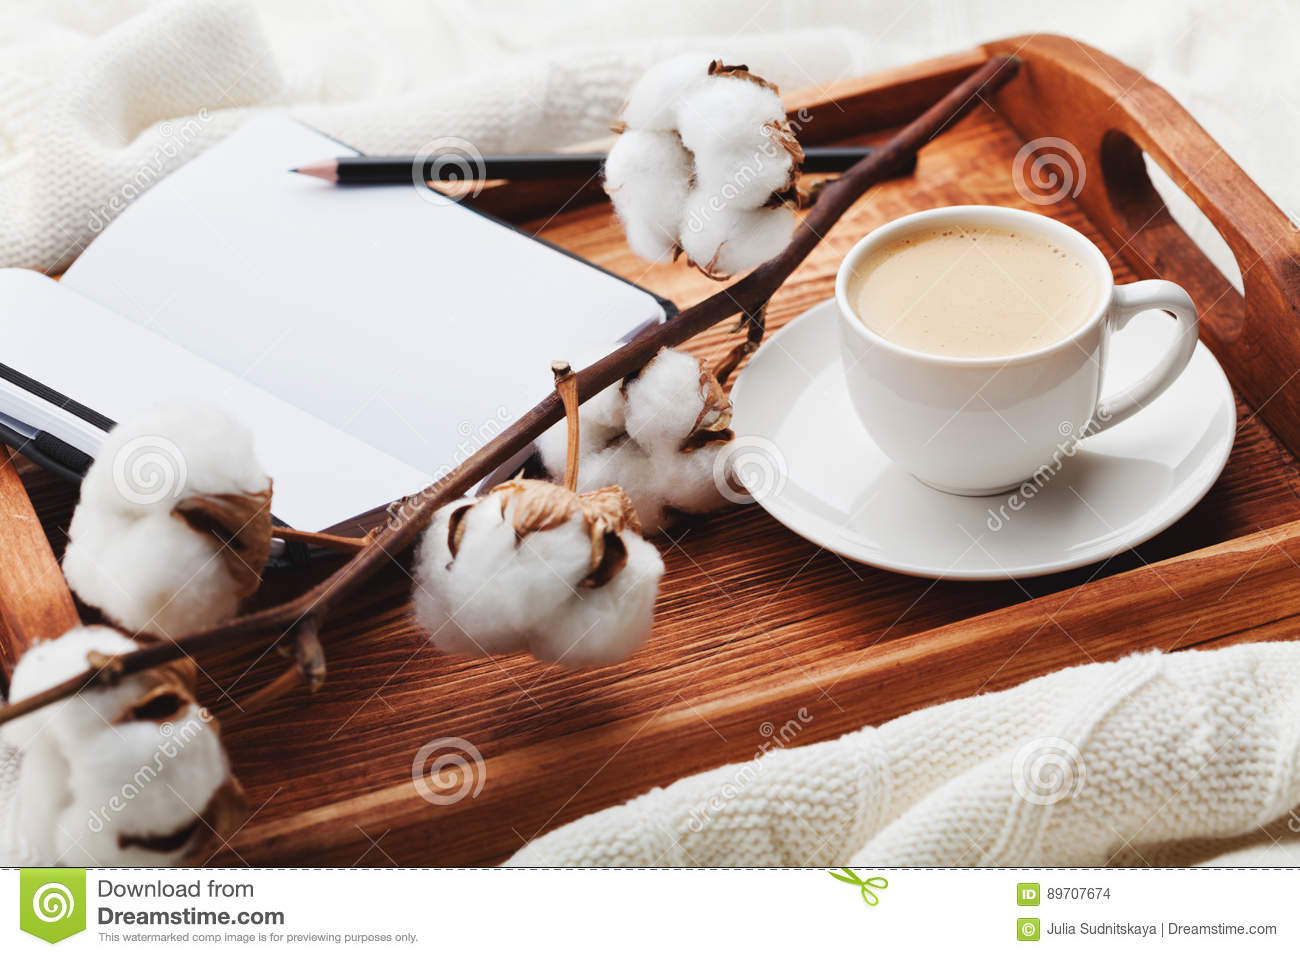 Cozy breakfast with cup of coffee, cotton flower and open notebook on rustic wooden tray in bed.